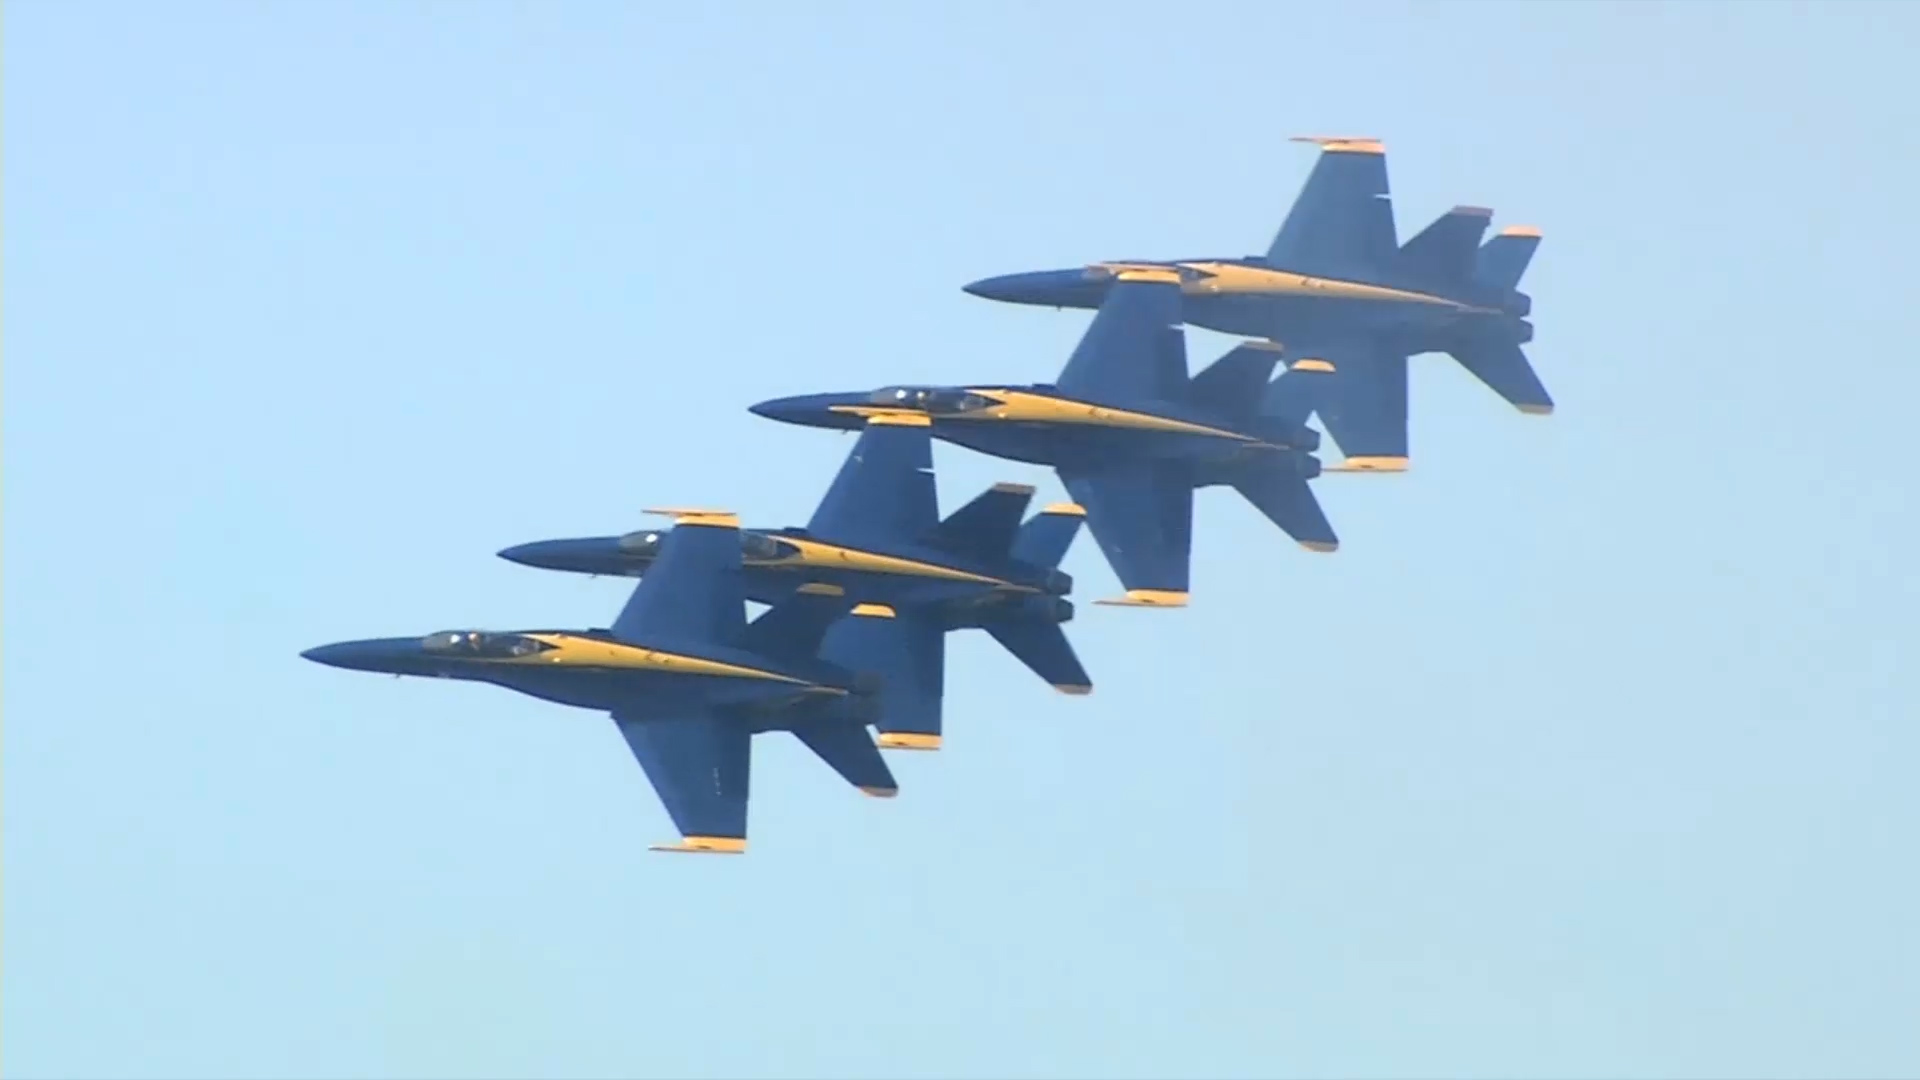 The Blue Angels took to the skies over San Francisco on Oct. 6, 2018.